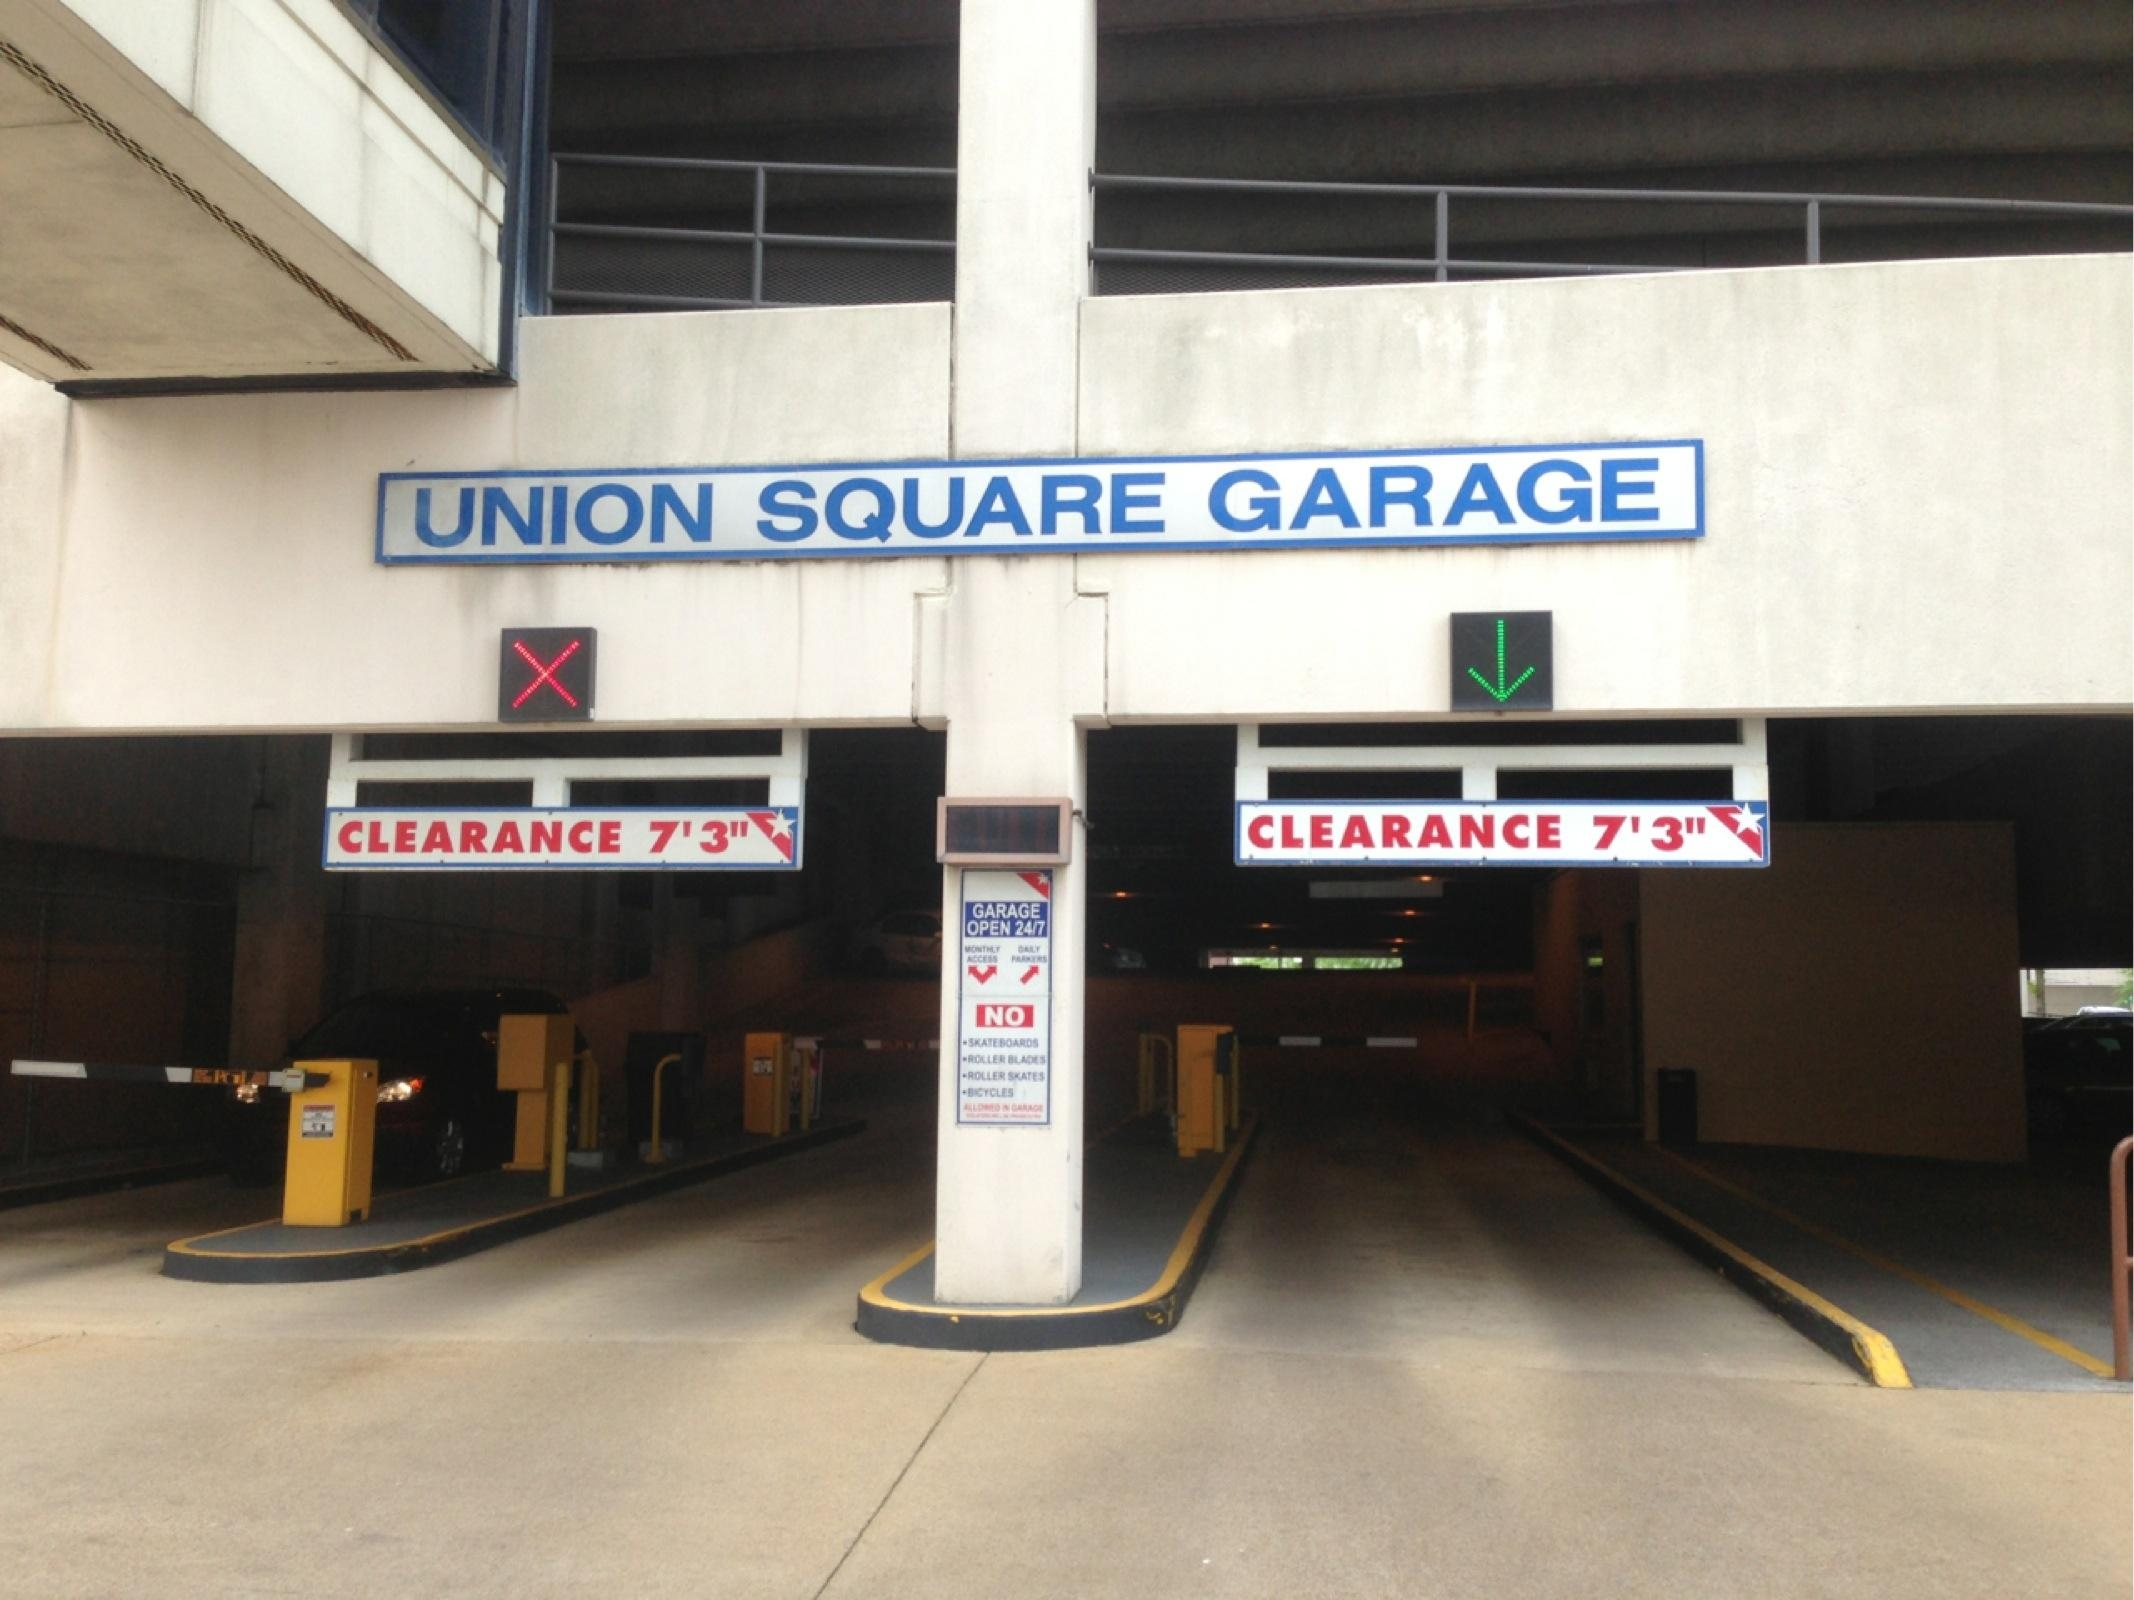 Union Square Garage Parking In Chattanooga Parkme Make Your Own Beautiful  HD Wallpapers, Images Over 1000+ [ralydesign.ml]